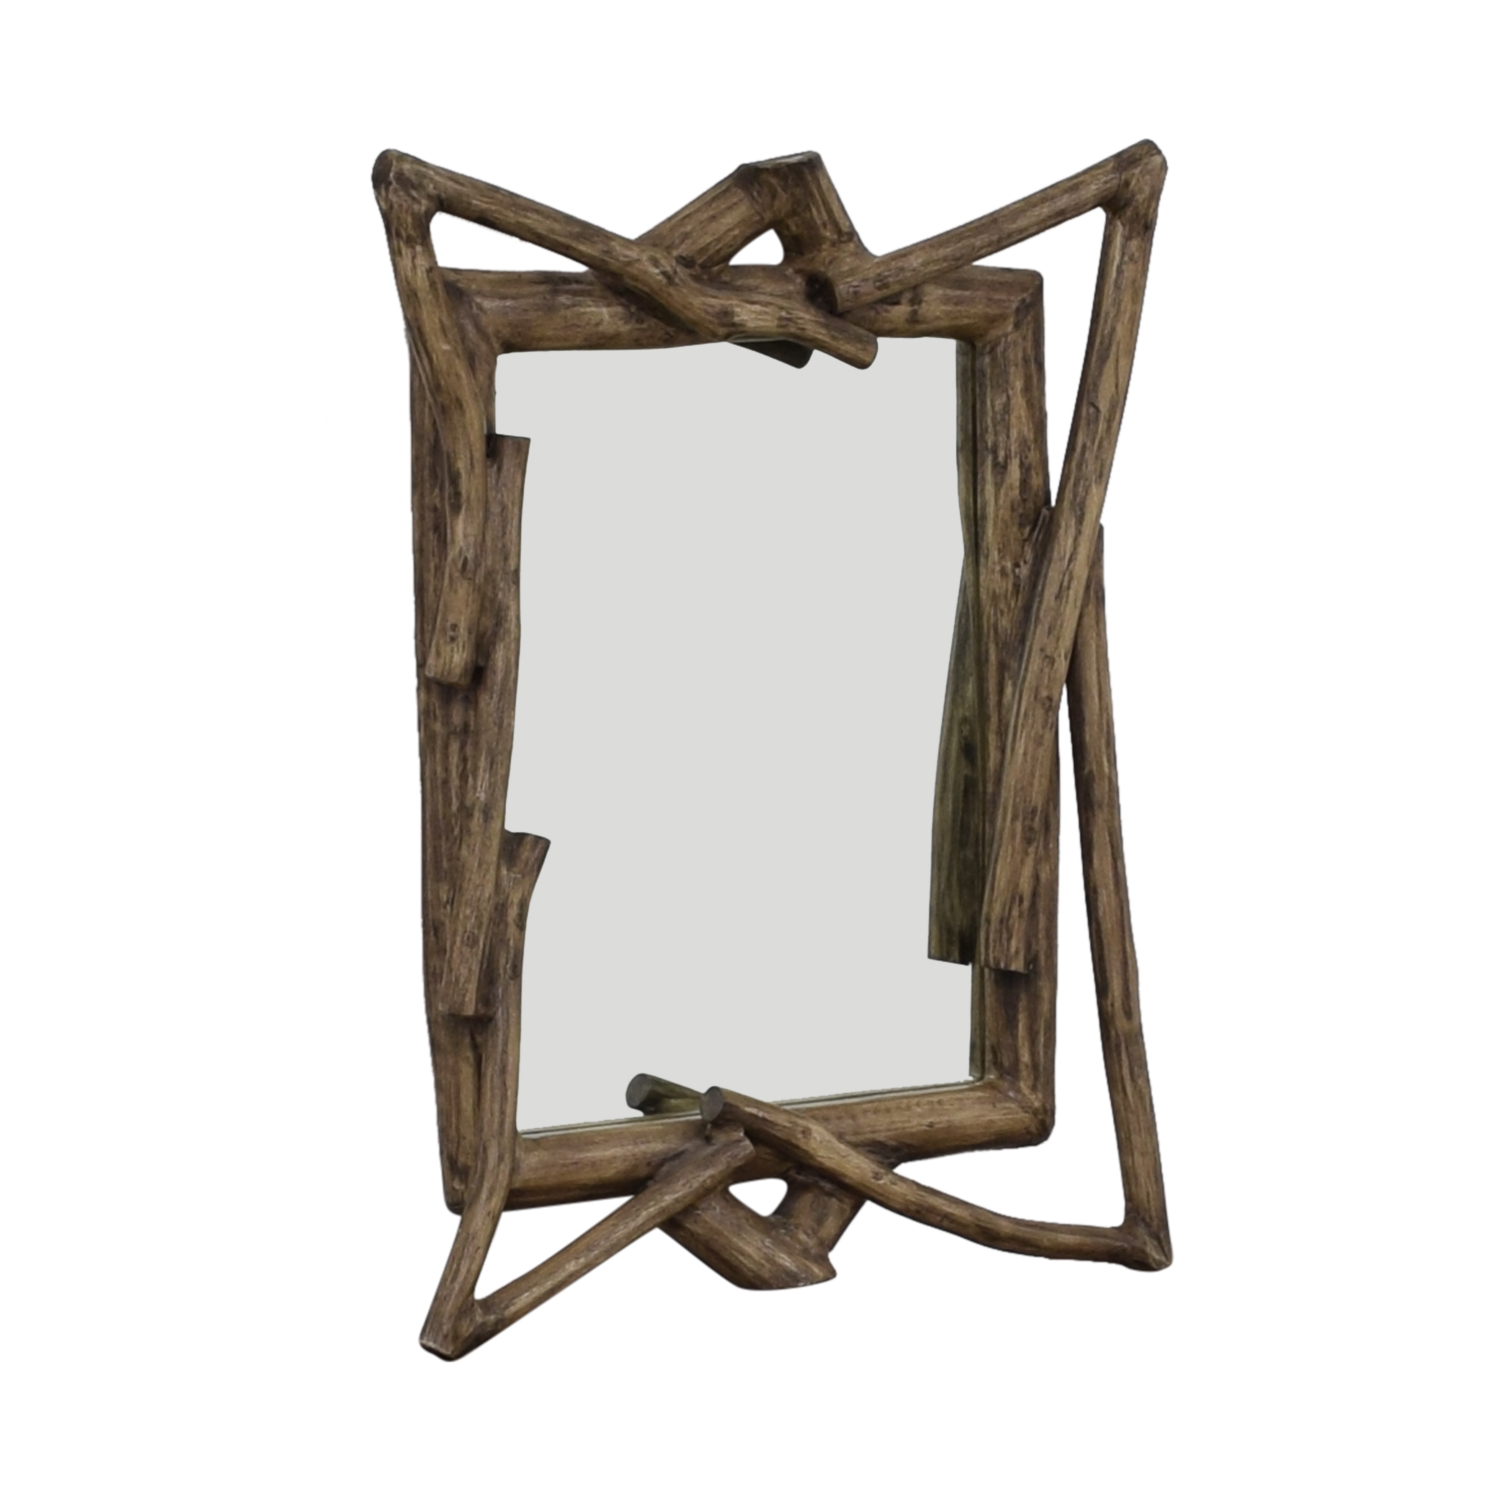 West Elm West Elm Rustic Wood Wall Mirror coupon